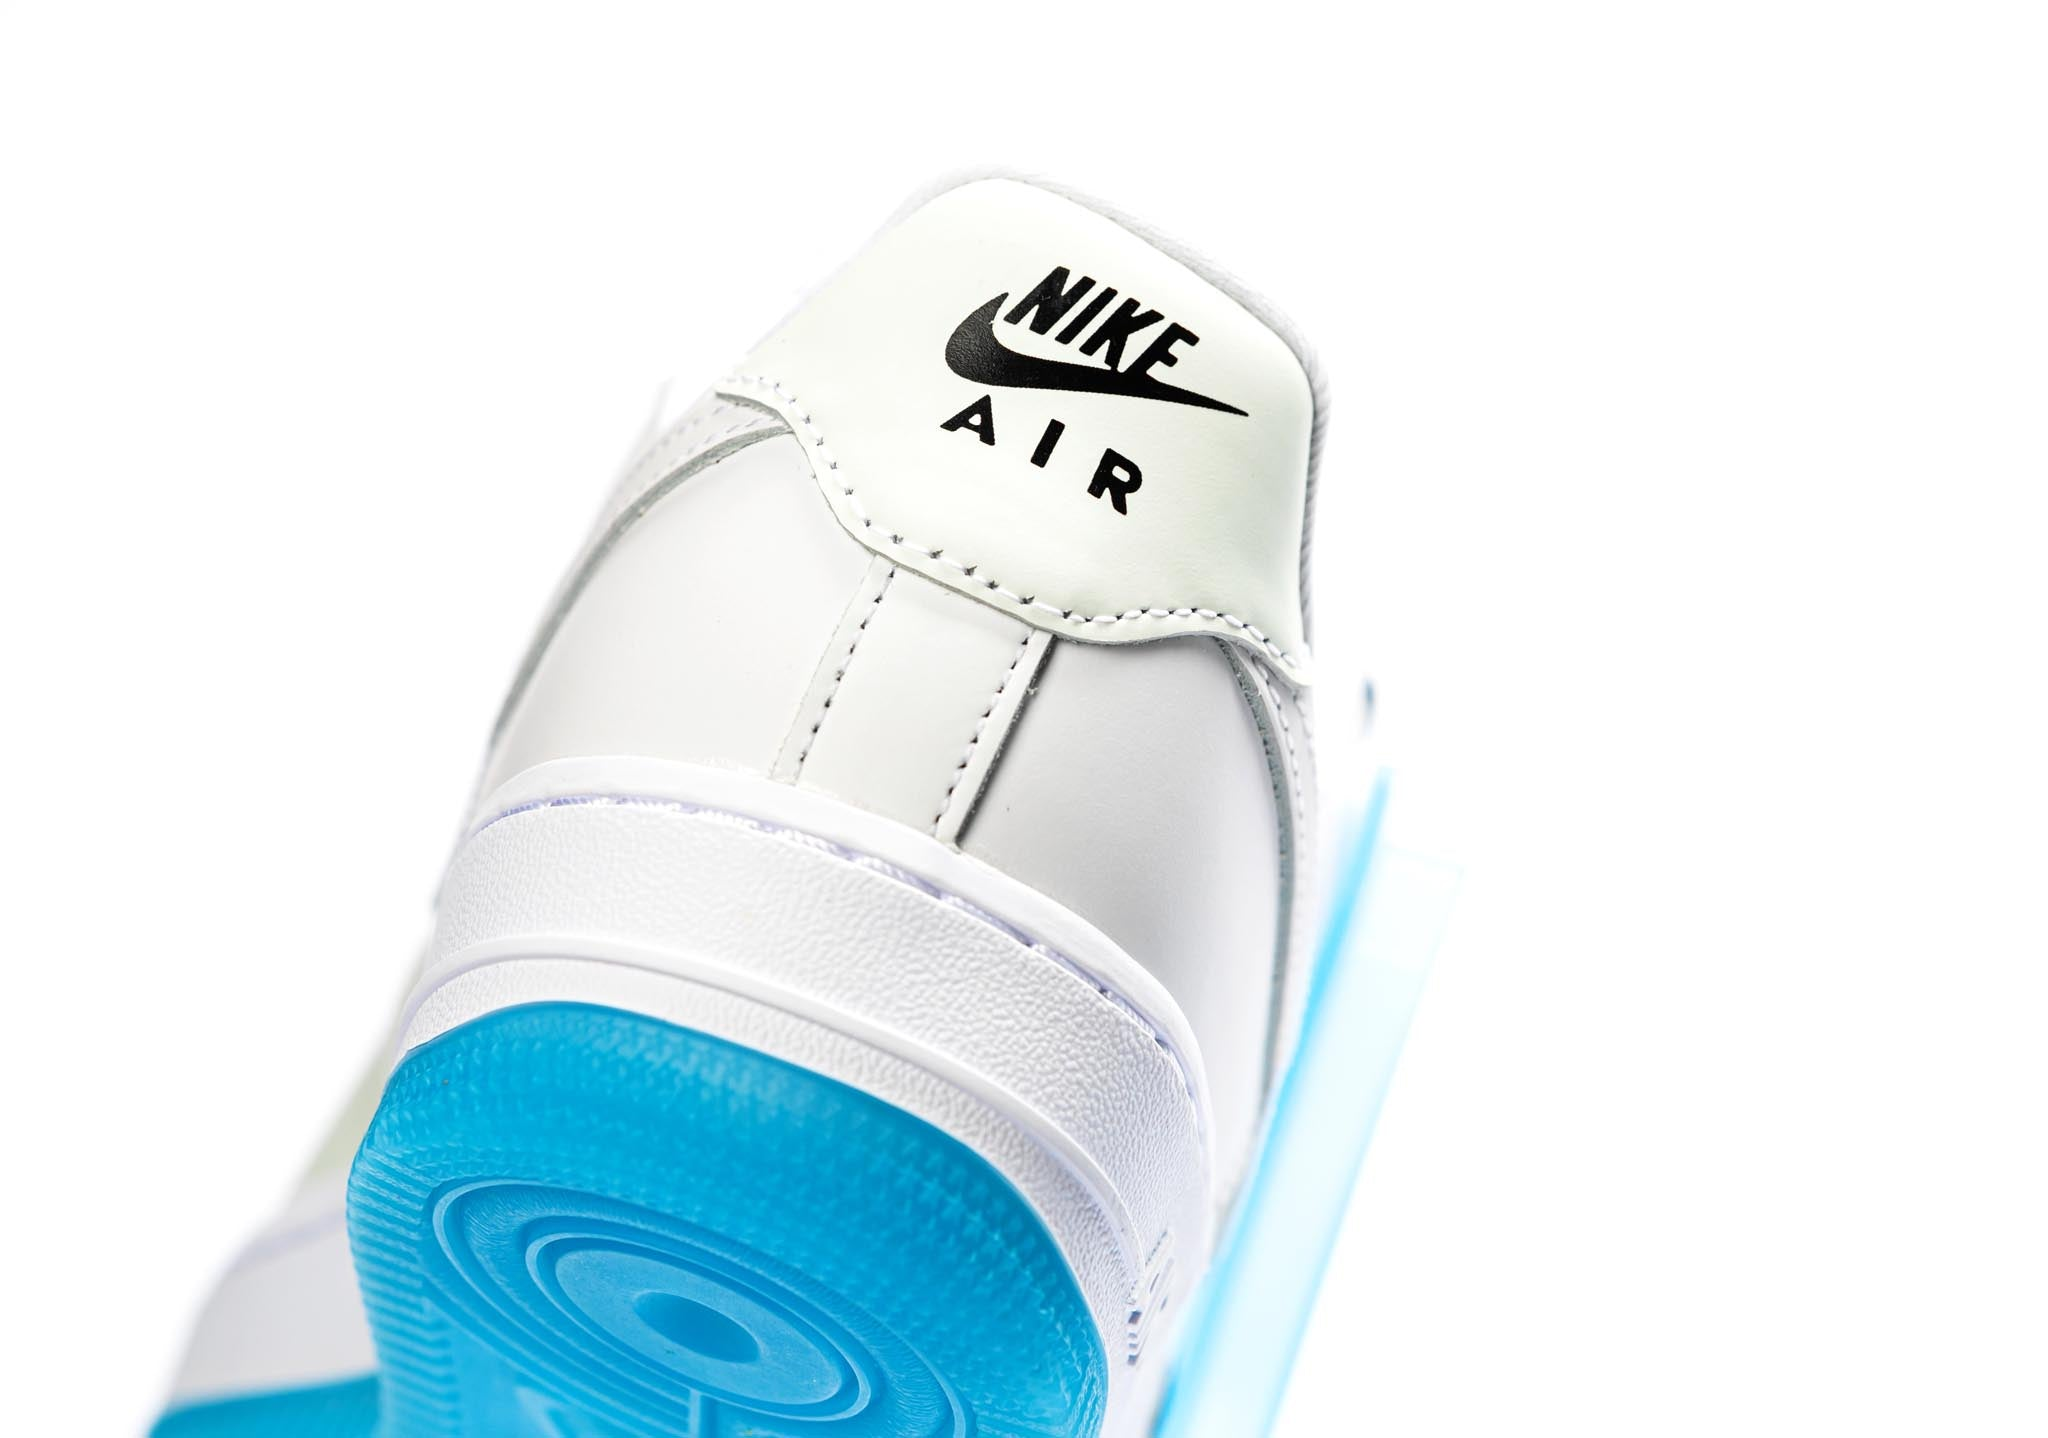 Nike Air Force 1 07 Low LX 'UV Reactive' White - 3